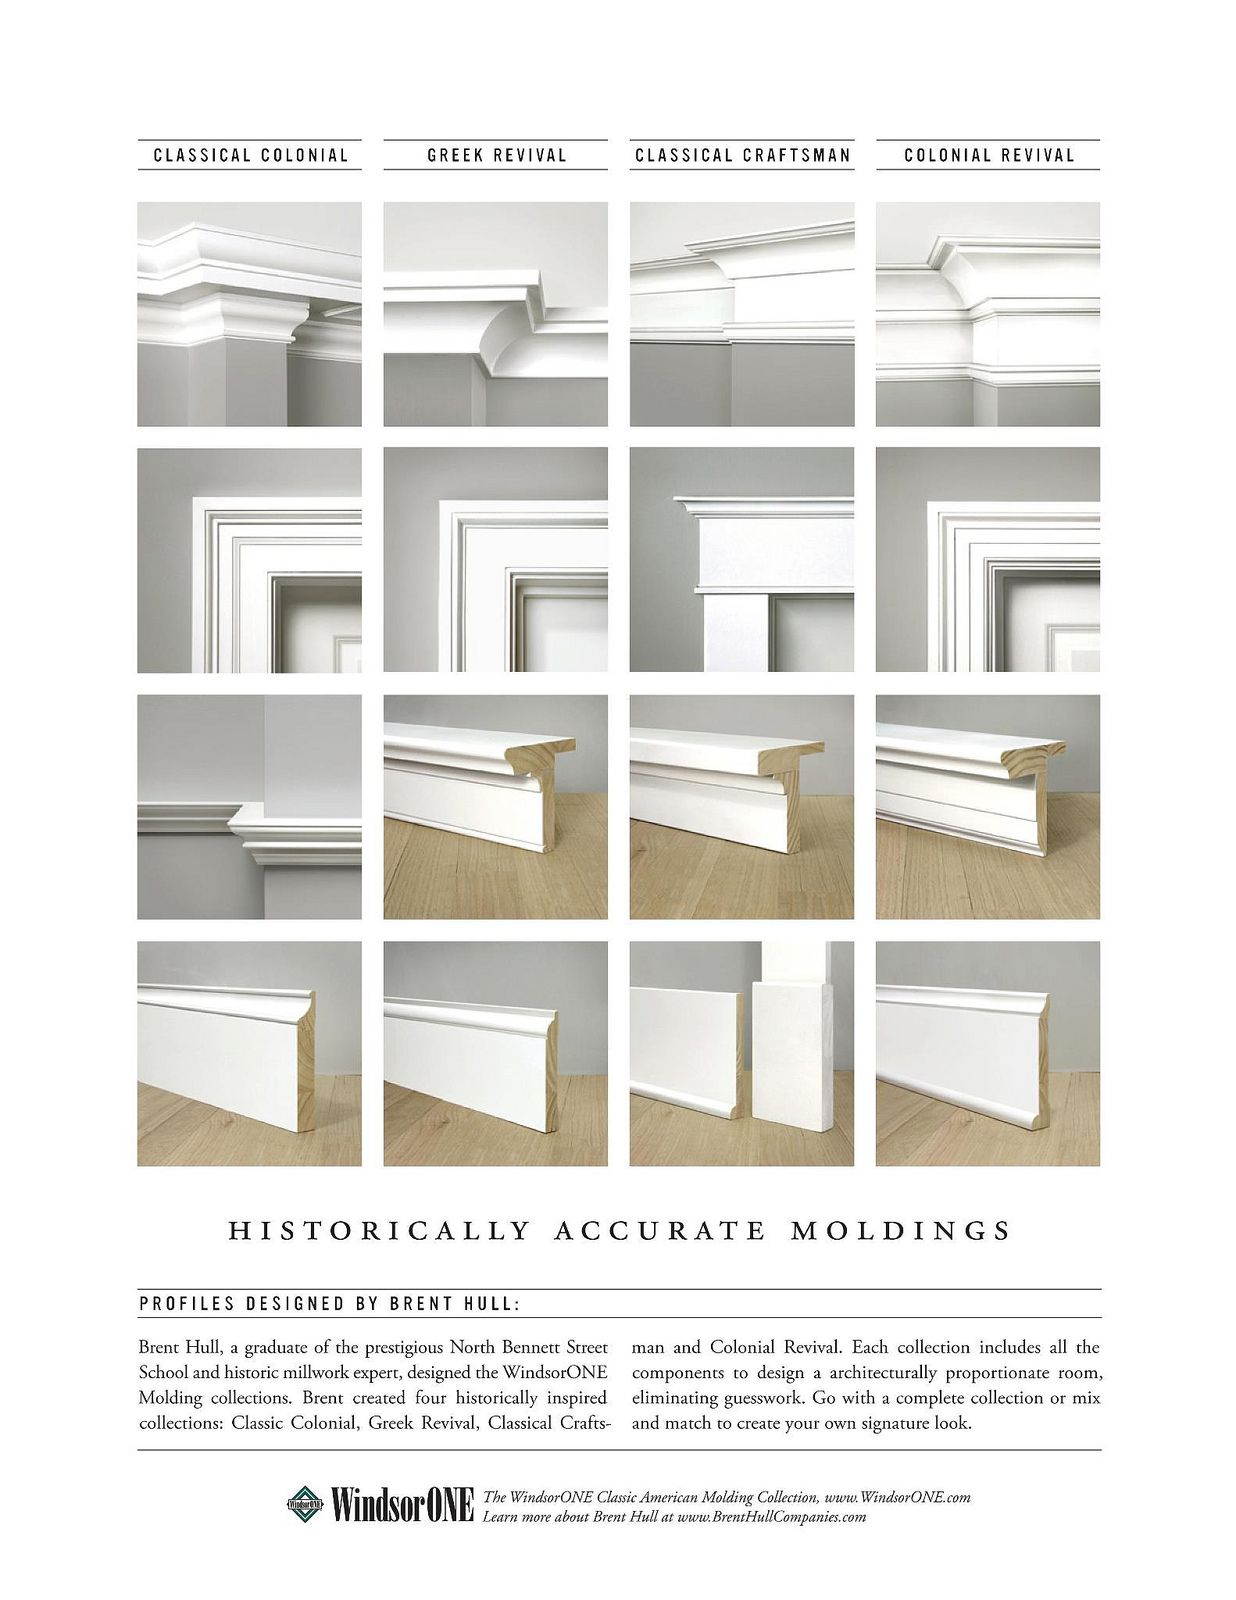 Four historically accurate molding styles compared side by side